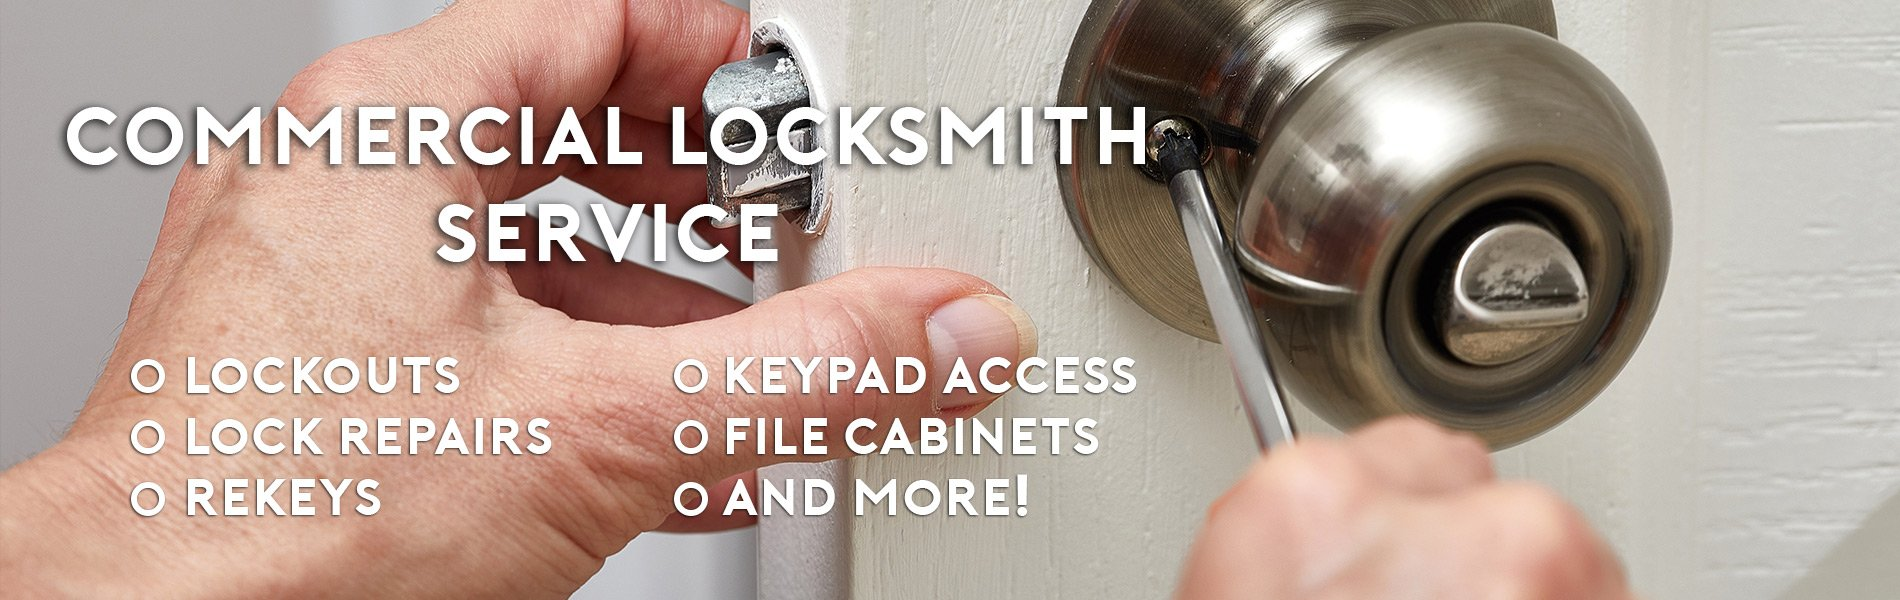 City Locksmith Shop | Lockout Service Charlotte, NC | 704